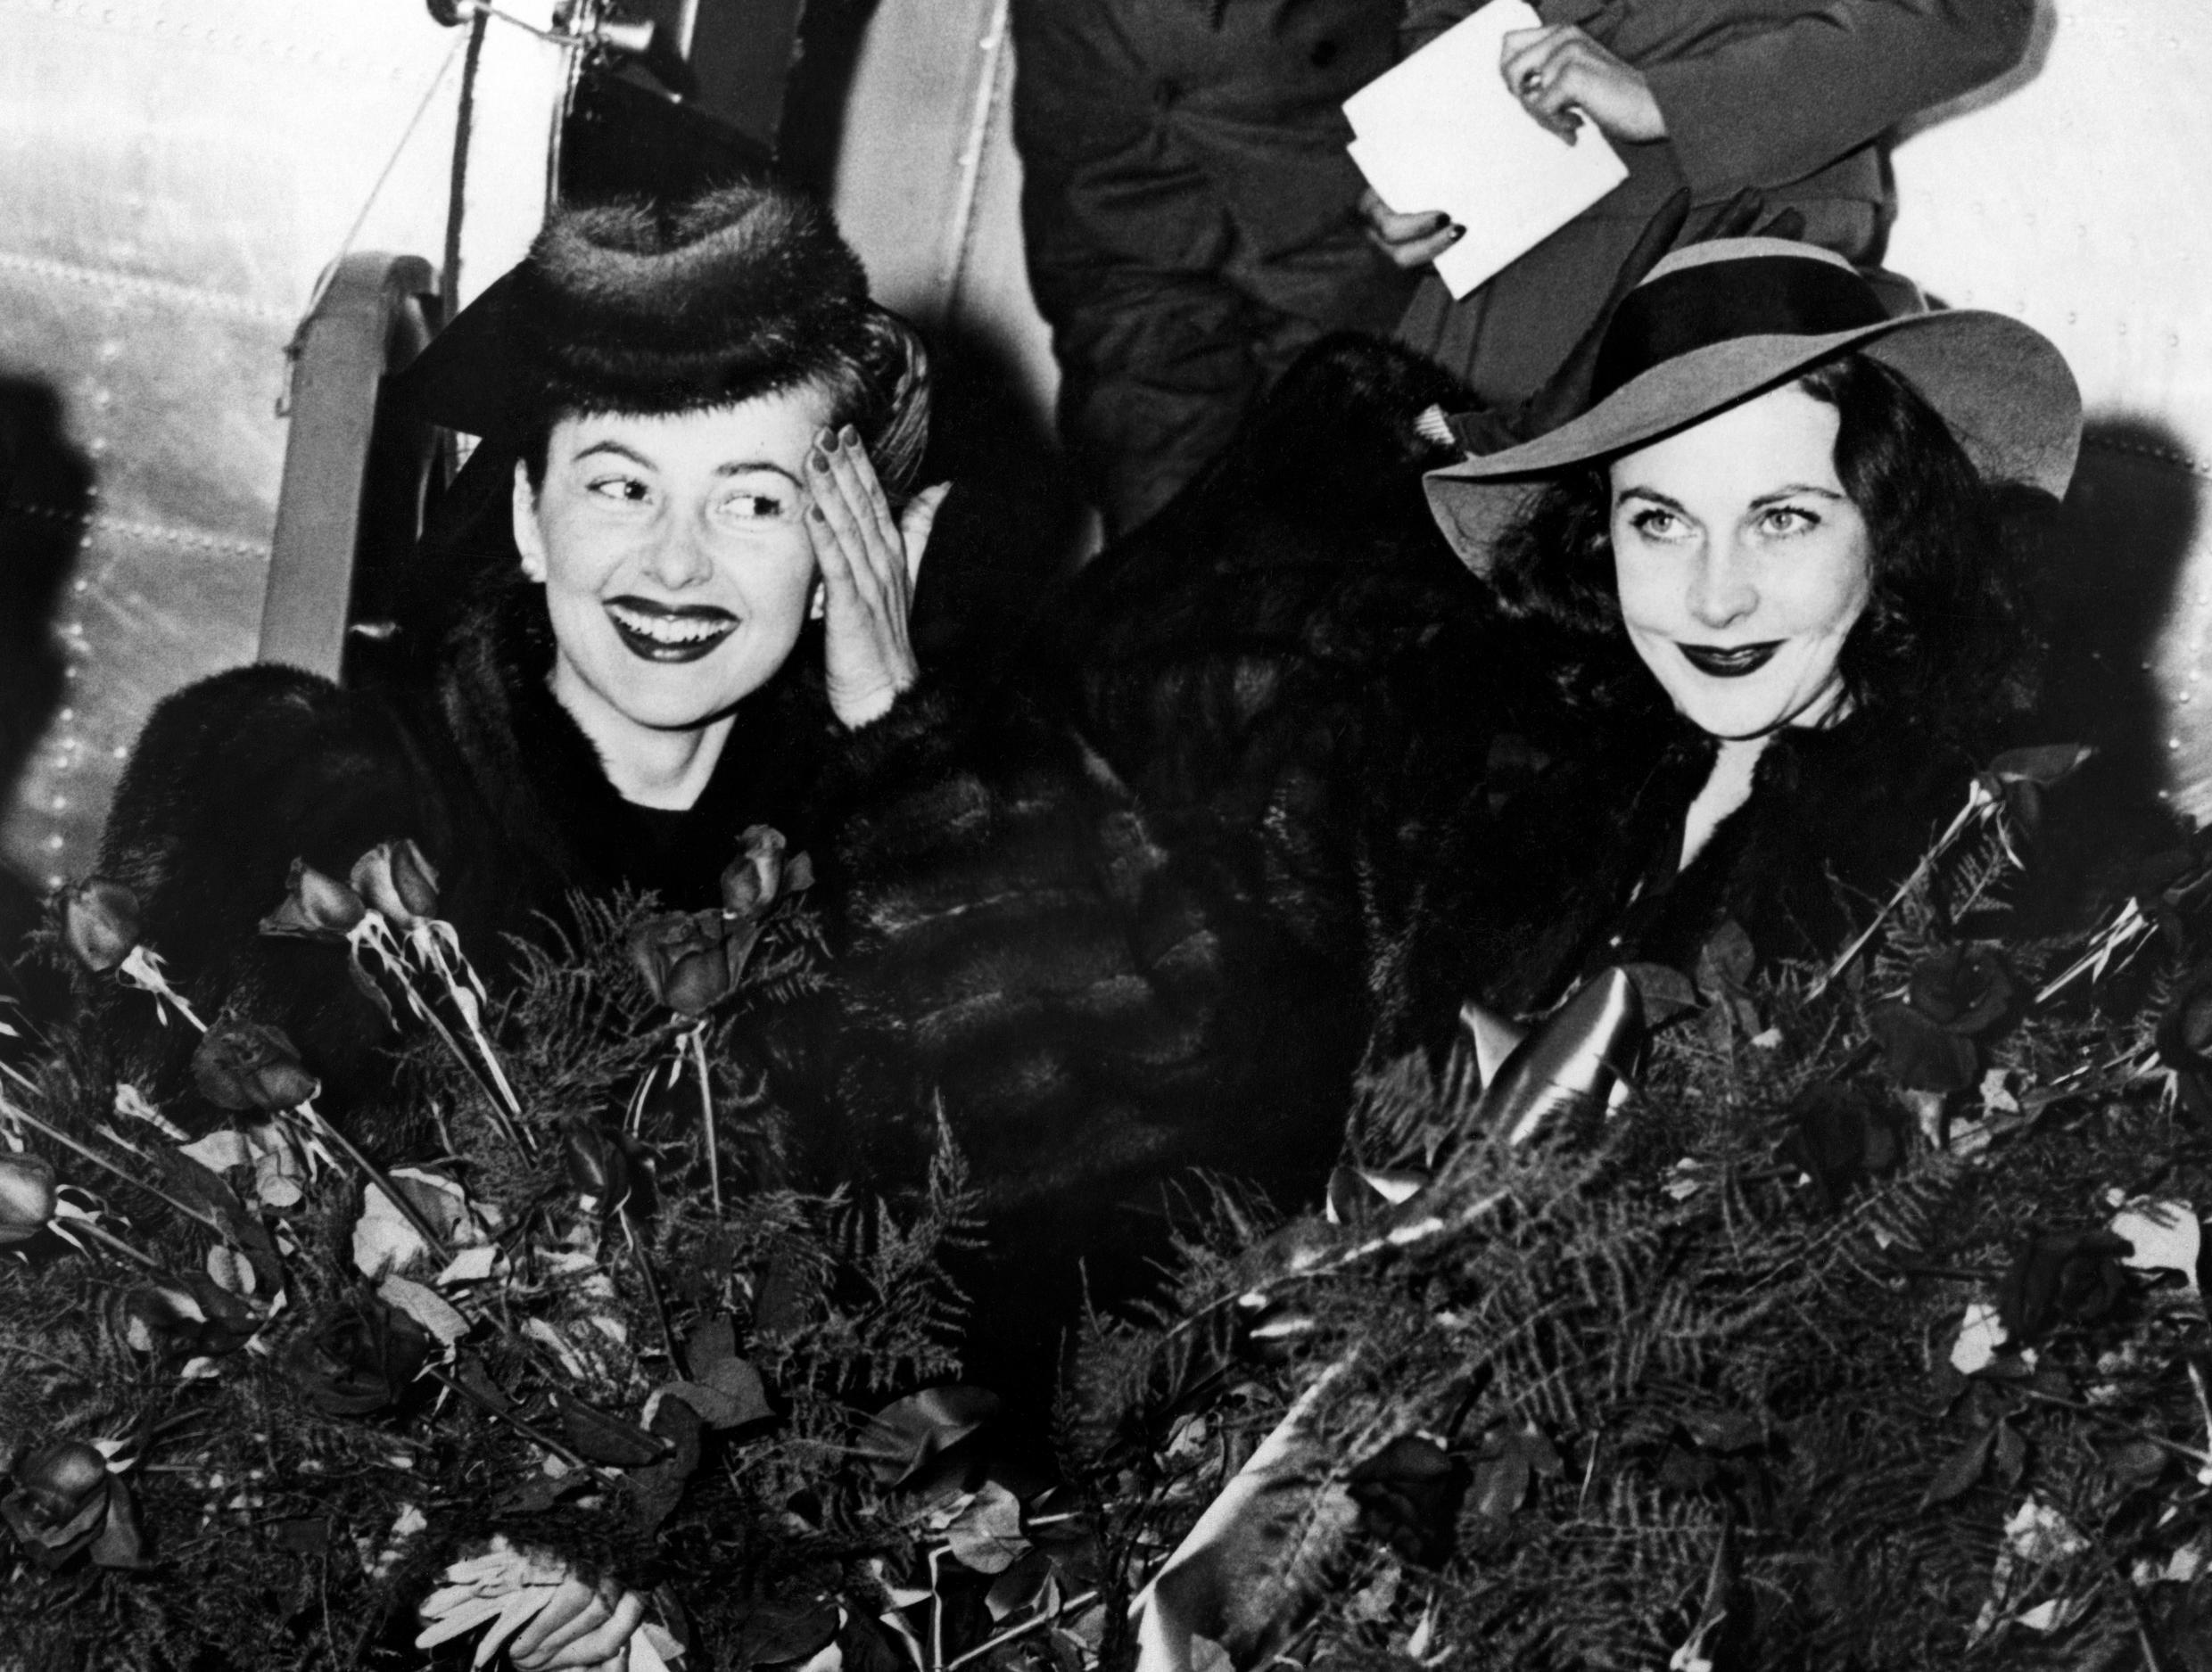 Olivia de Havilland (L.) with British actress Vivien Leigh, her co-star in Gone with the wind